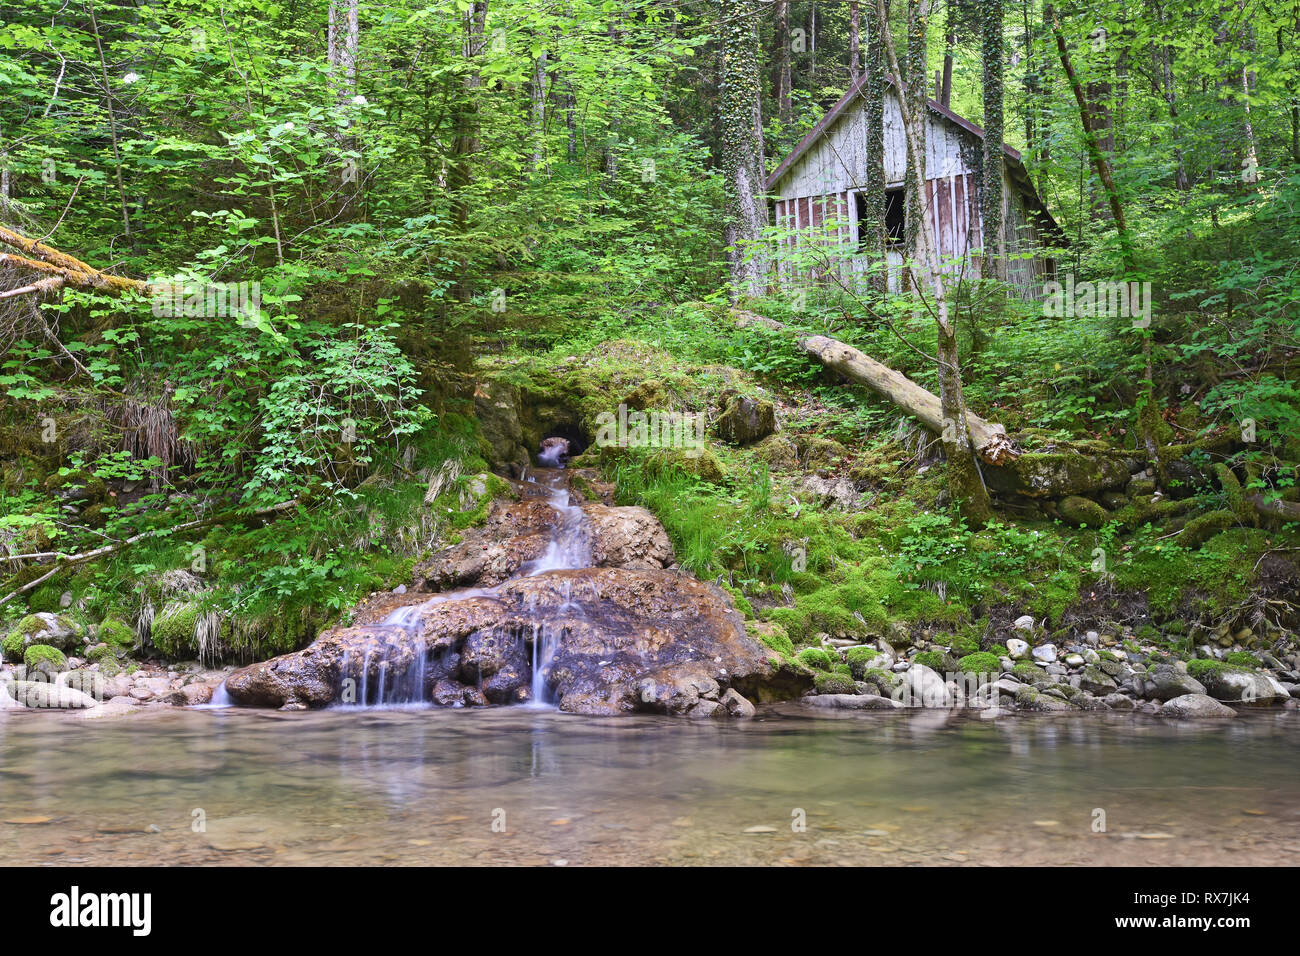 Old wooden hut next to a little stream in deep forest. Bavaria, Germany Stock Photo